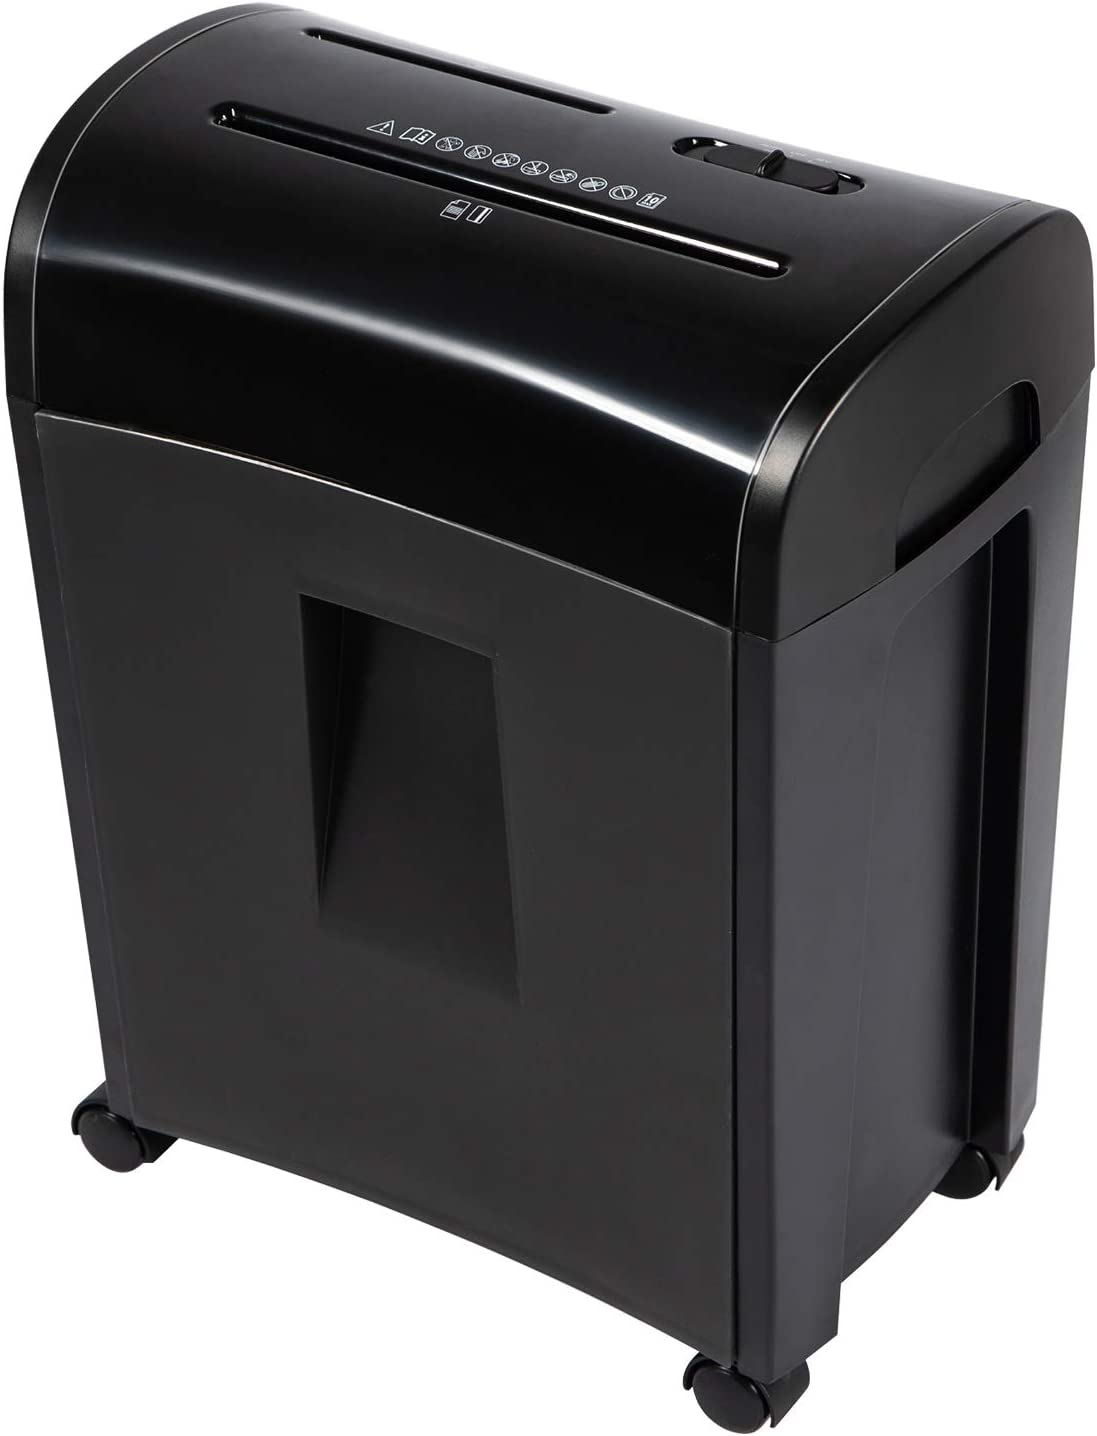 Zoomyo 10-Sheet Cross-Cut Paper, CD and Credit Card Home Office Shredder, P-4 High Security Shredders with 3.6 Gallons Wastebasket, Separated CD Container, Black